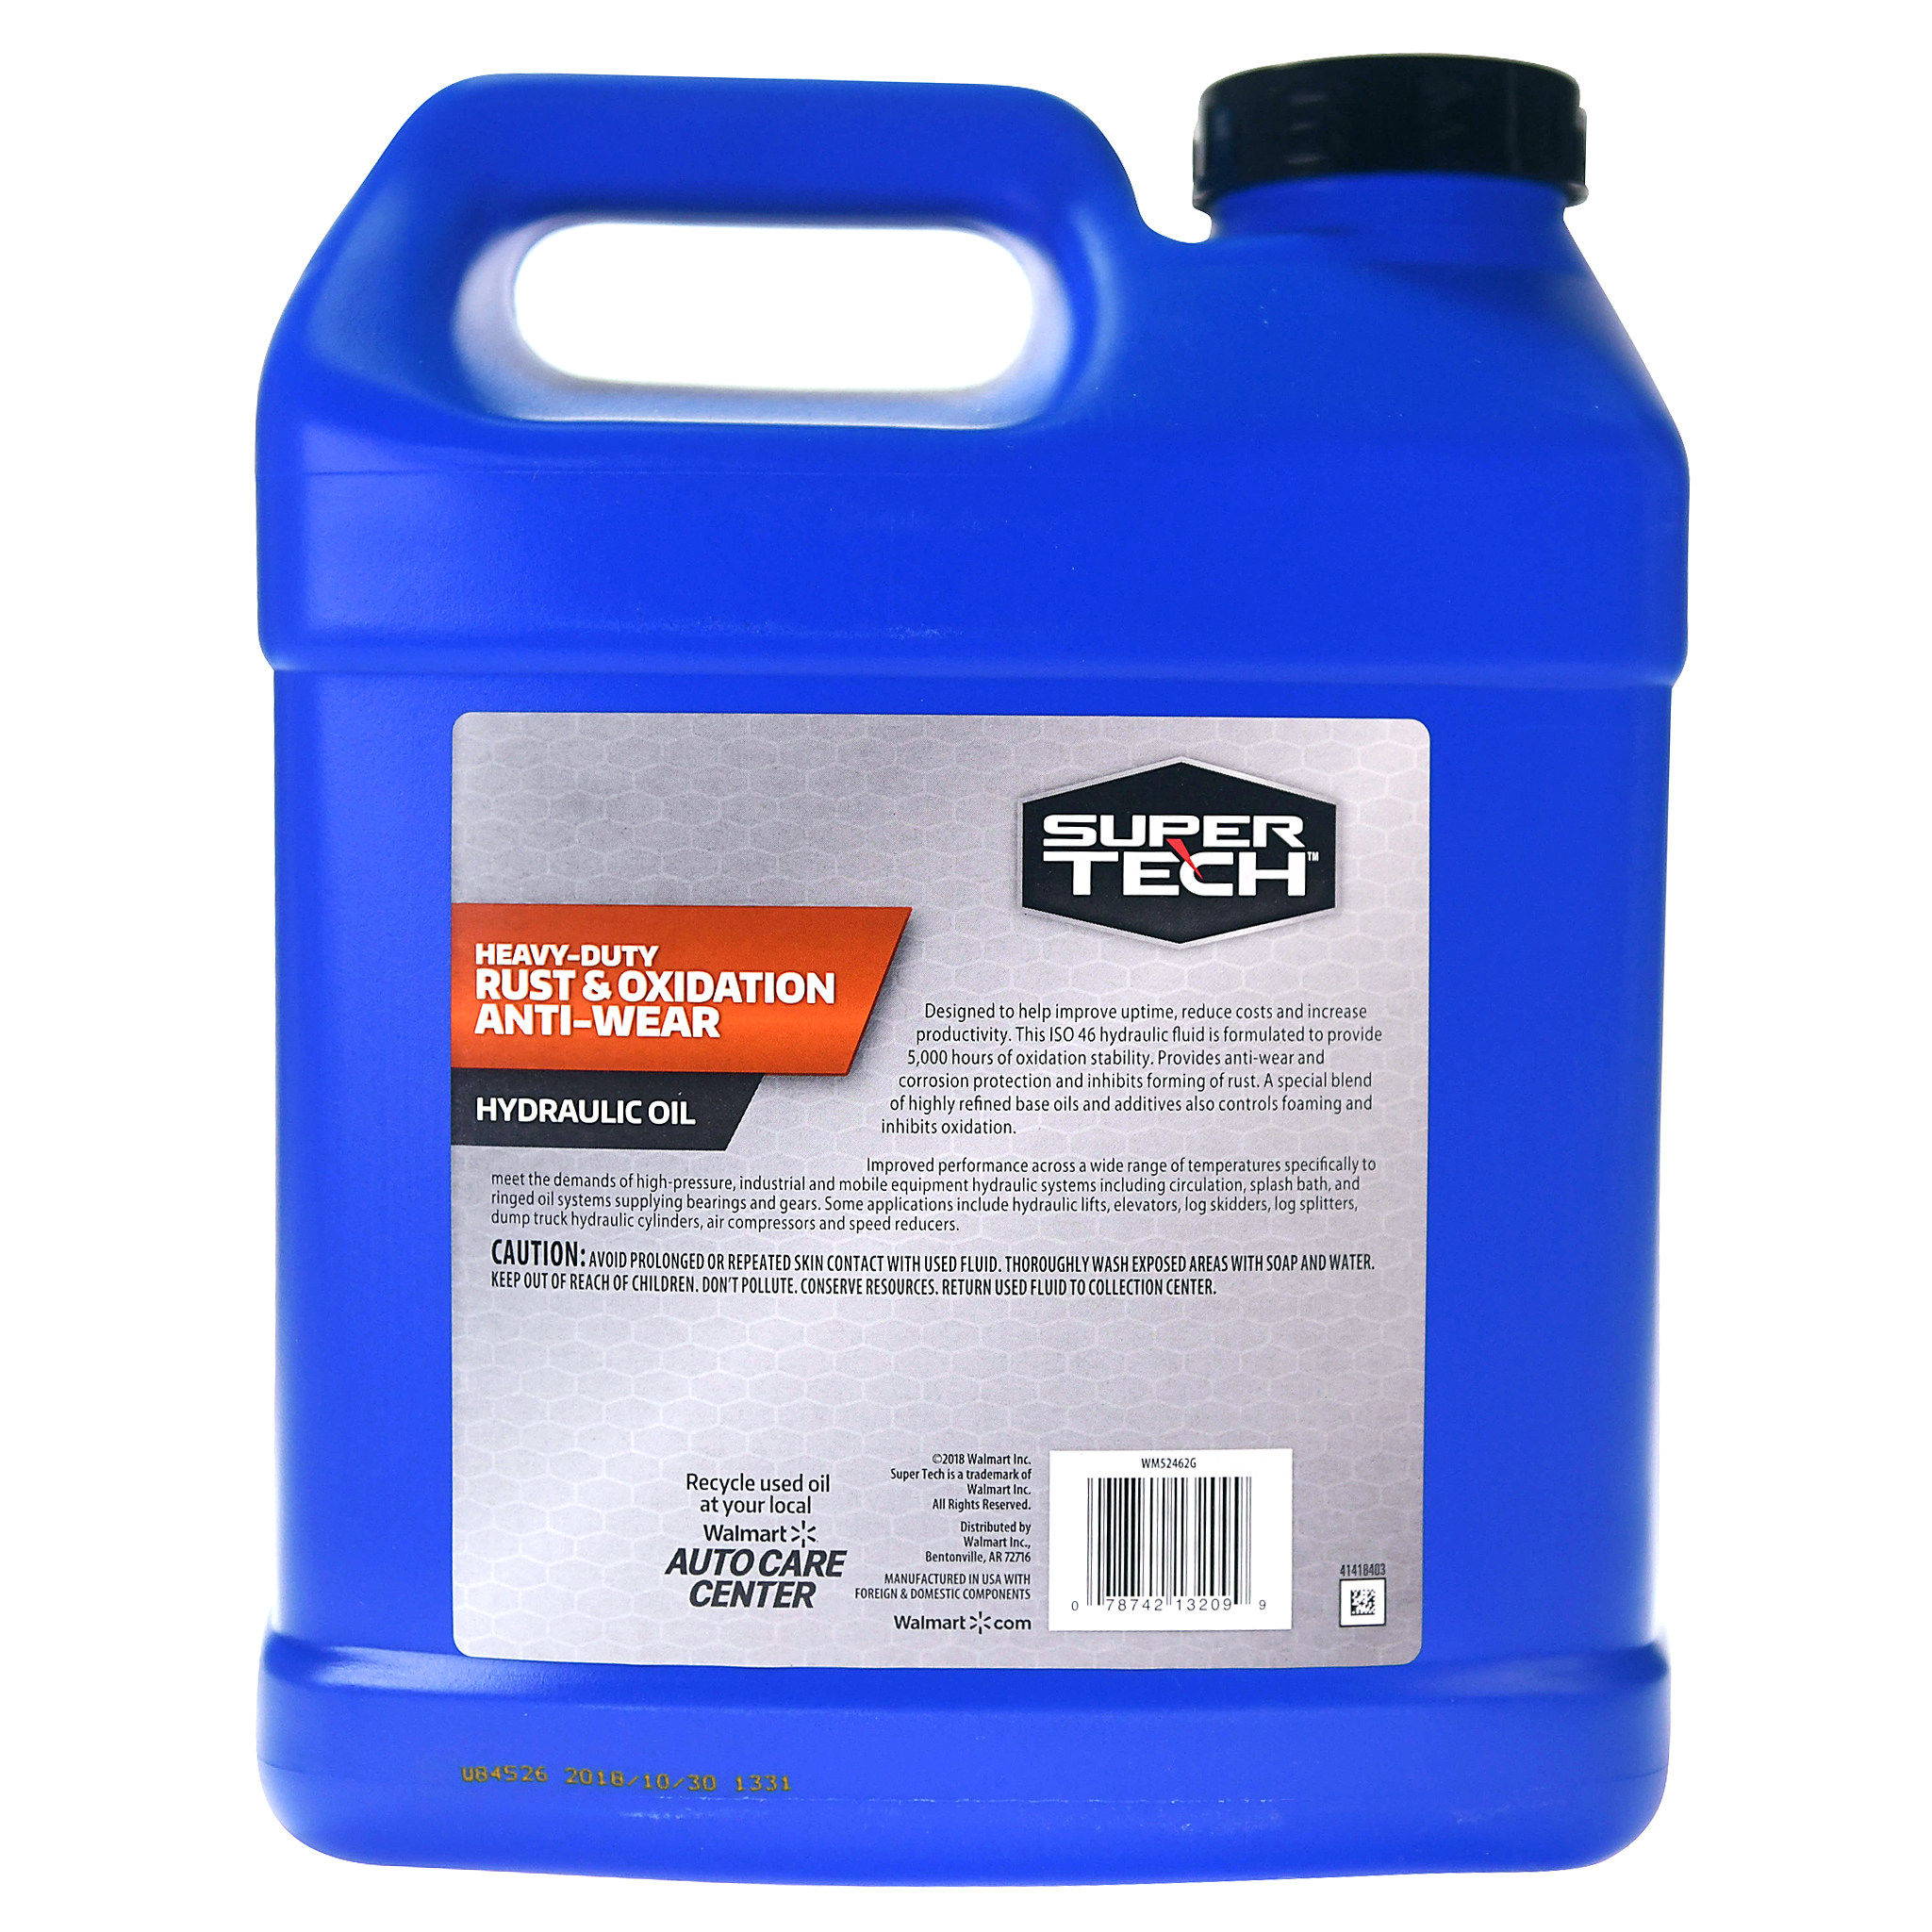 Super Tech Heavy Duty Rust and Oxidation Anti Wear Hydraulic Oil, 2 Gallons